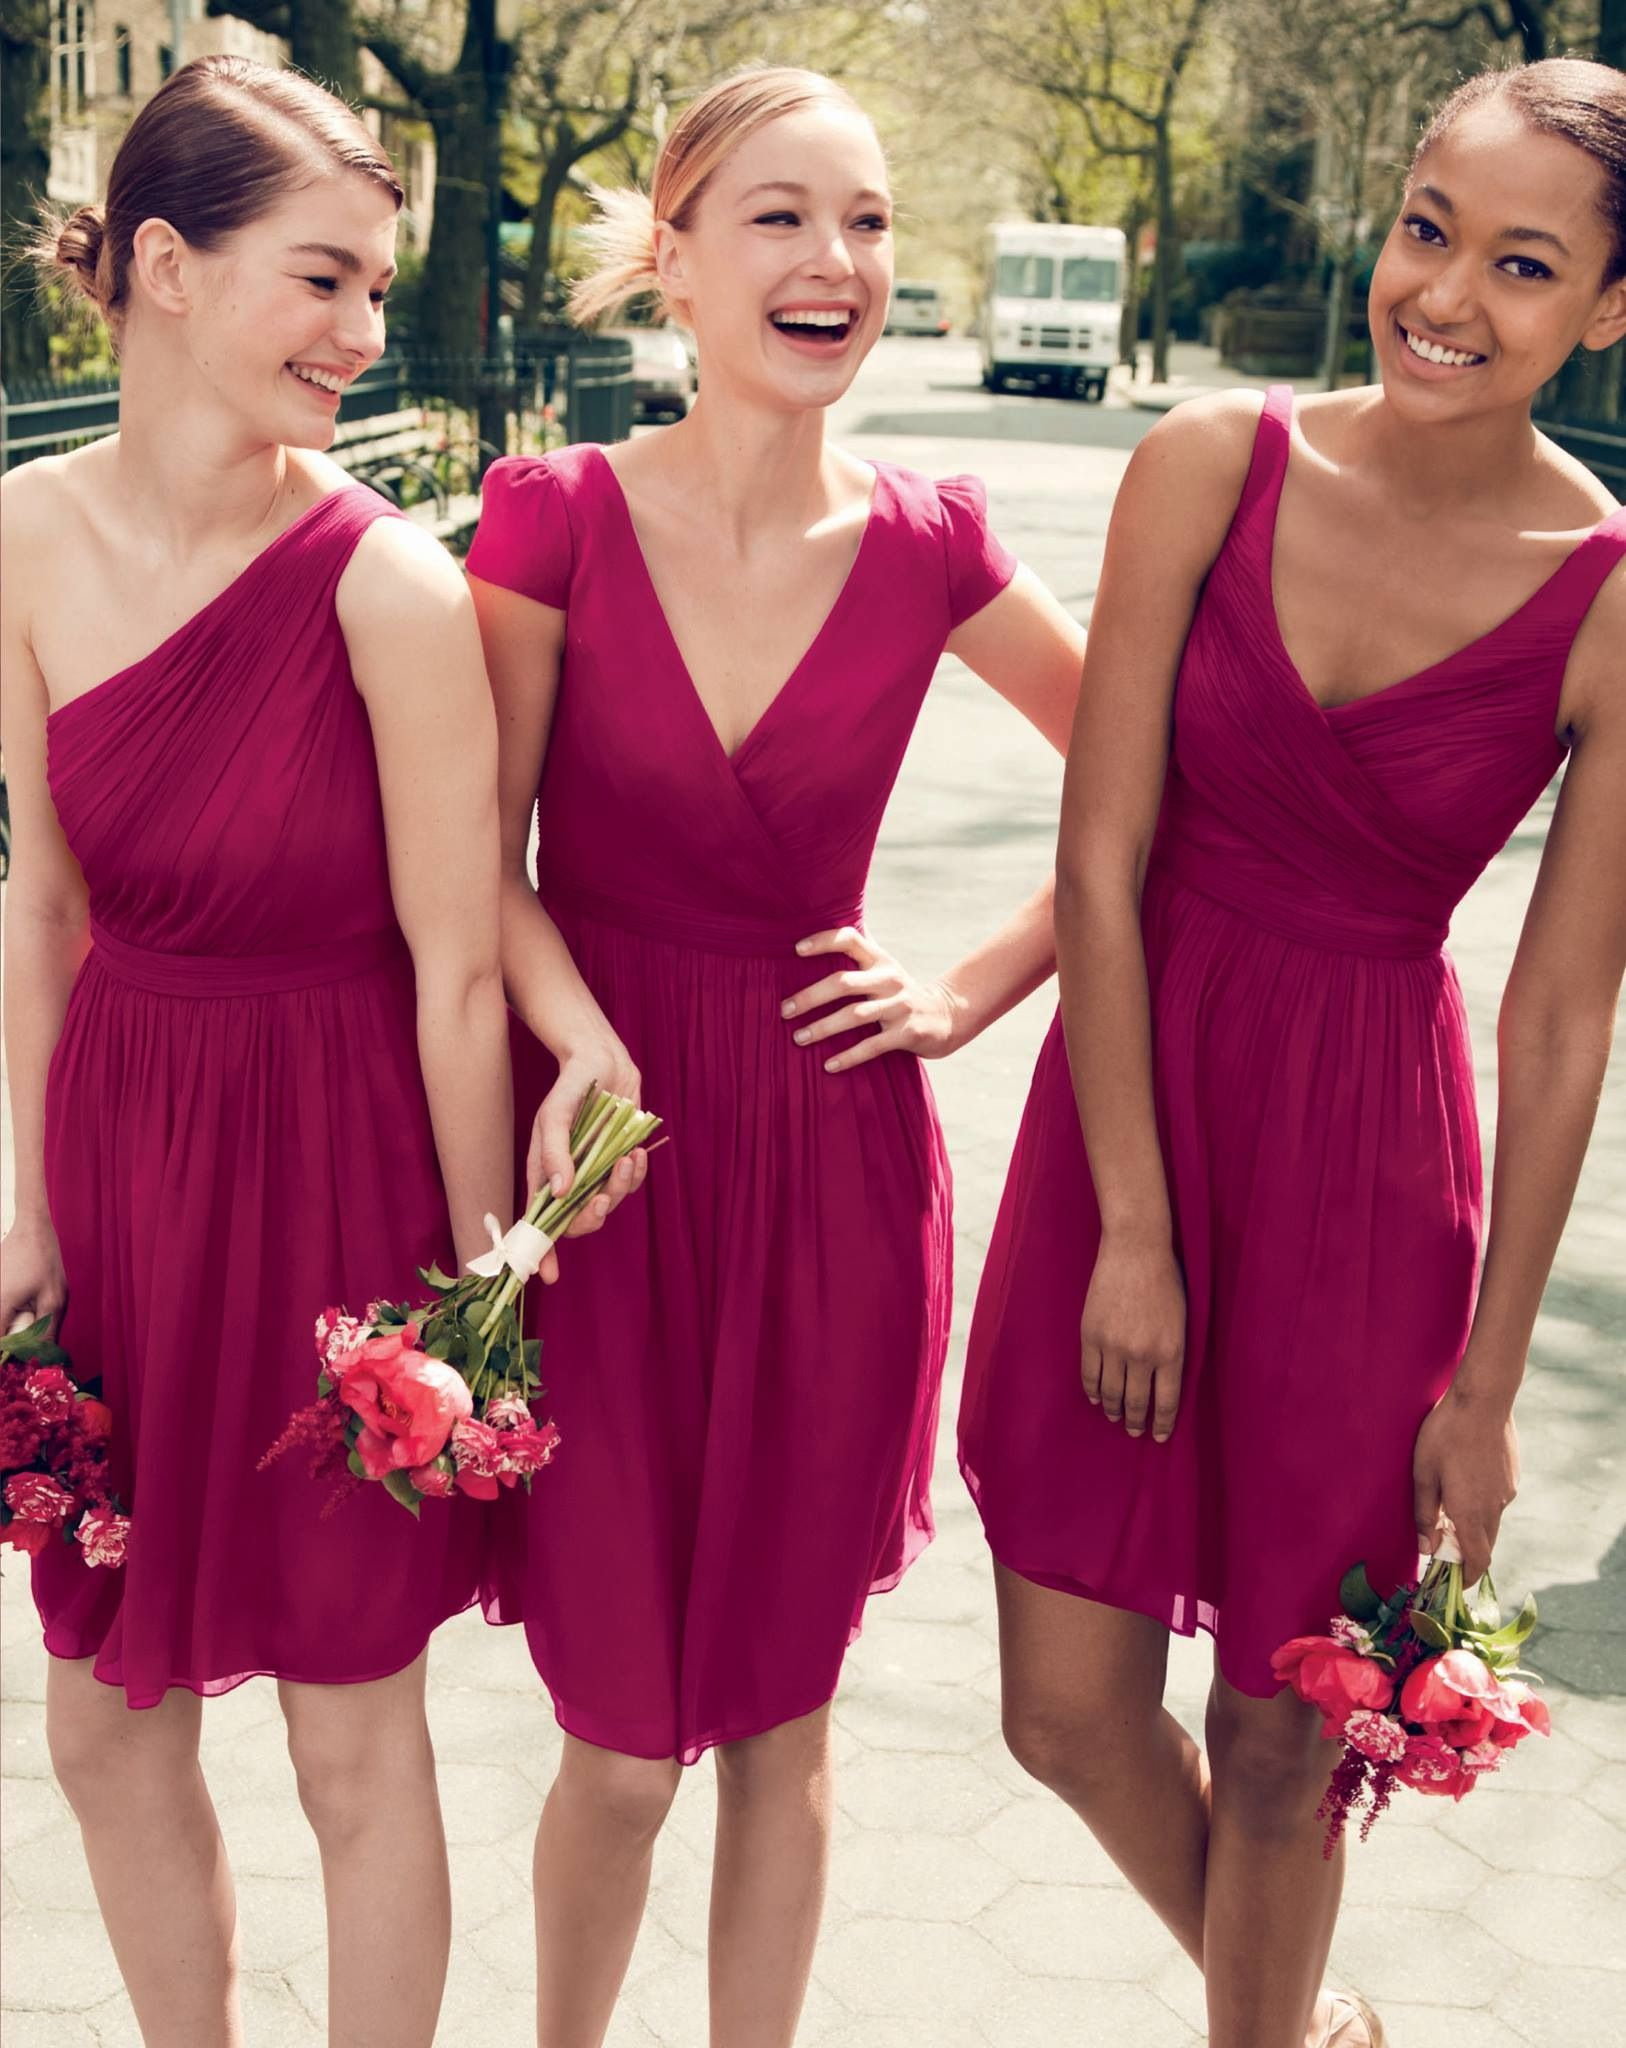 Color possibility for bridesmaids with moh in lighter shade get your jcrew bridesmaid dress shipped overnight for free tips to make bridesmaid season easier and cheaper ombrellifo Choice Image